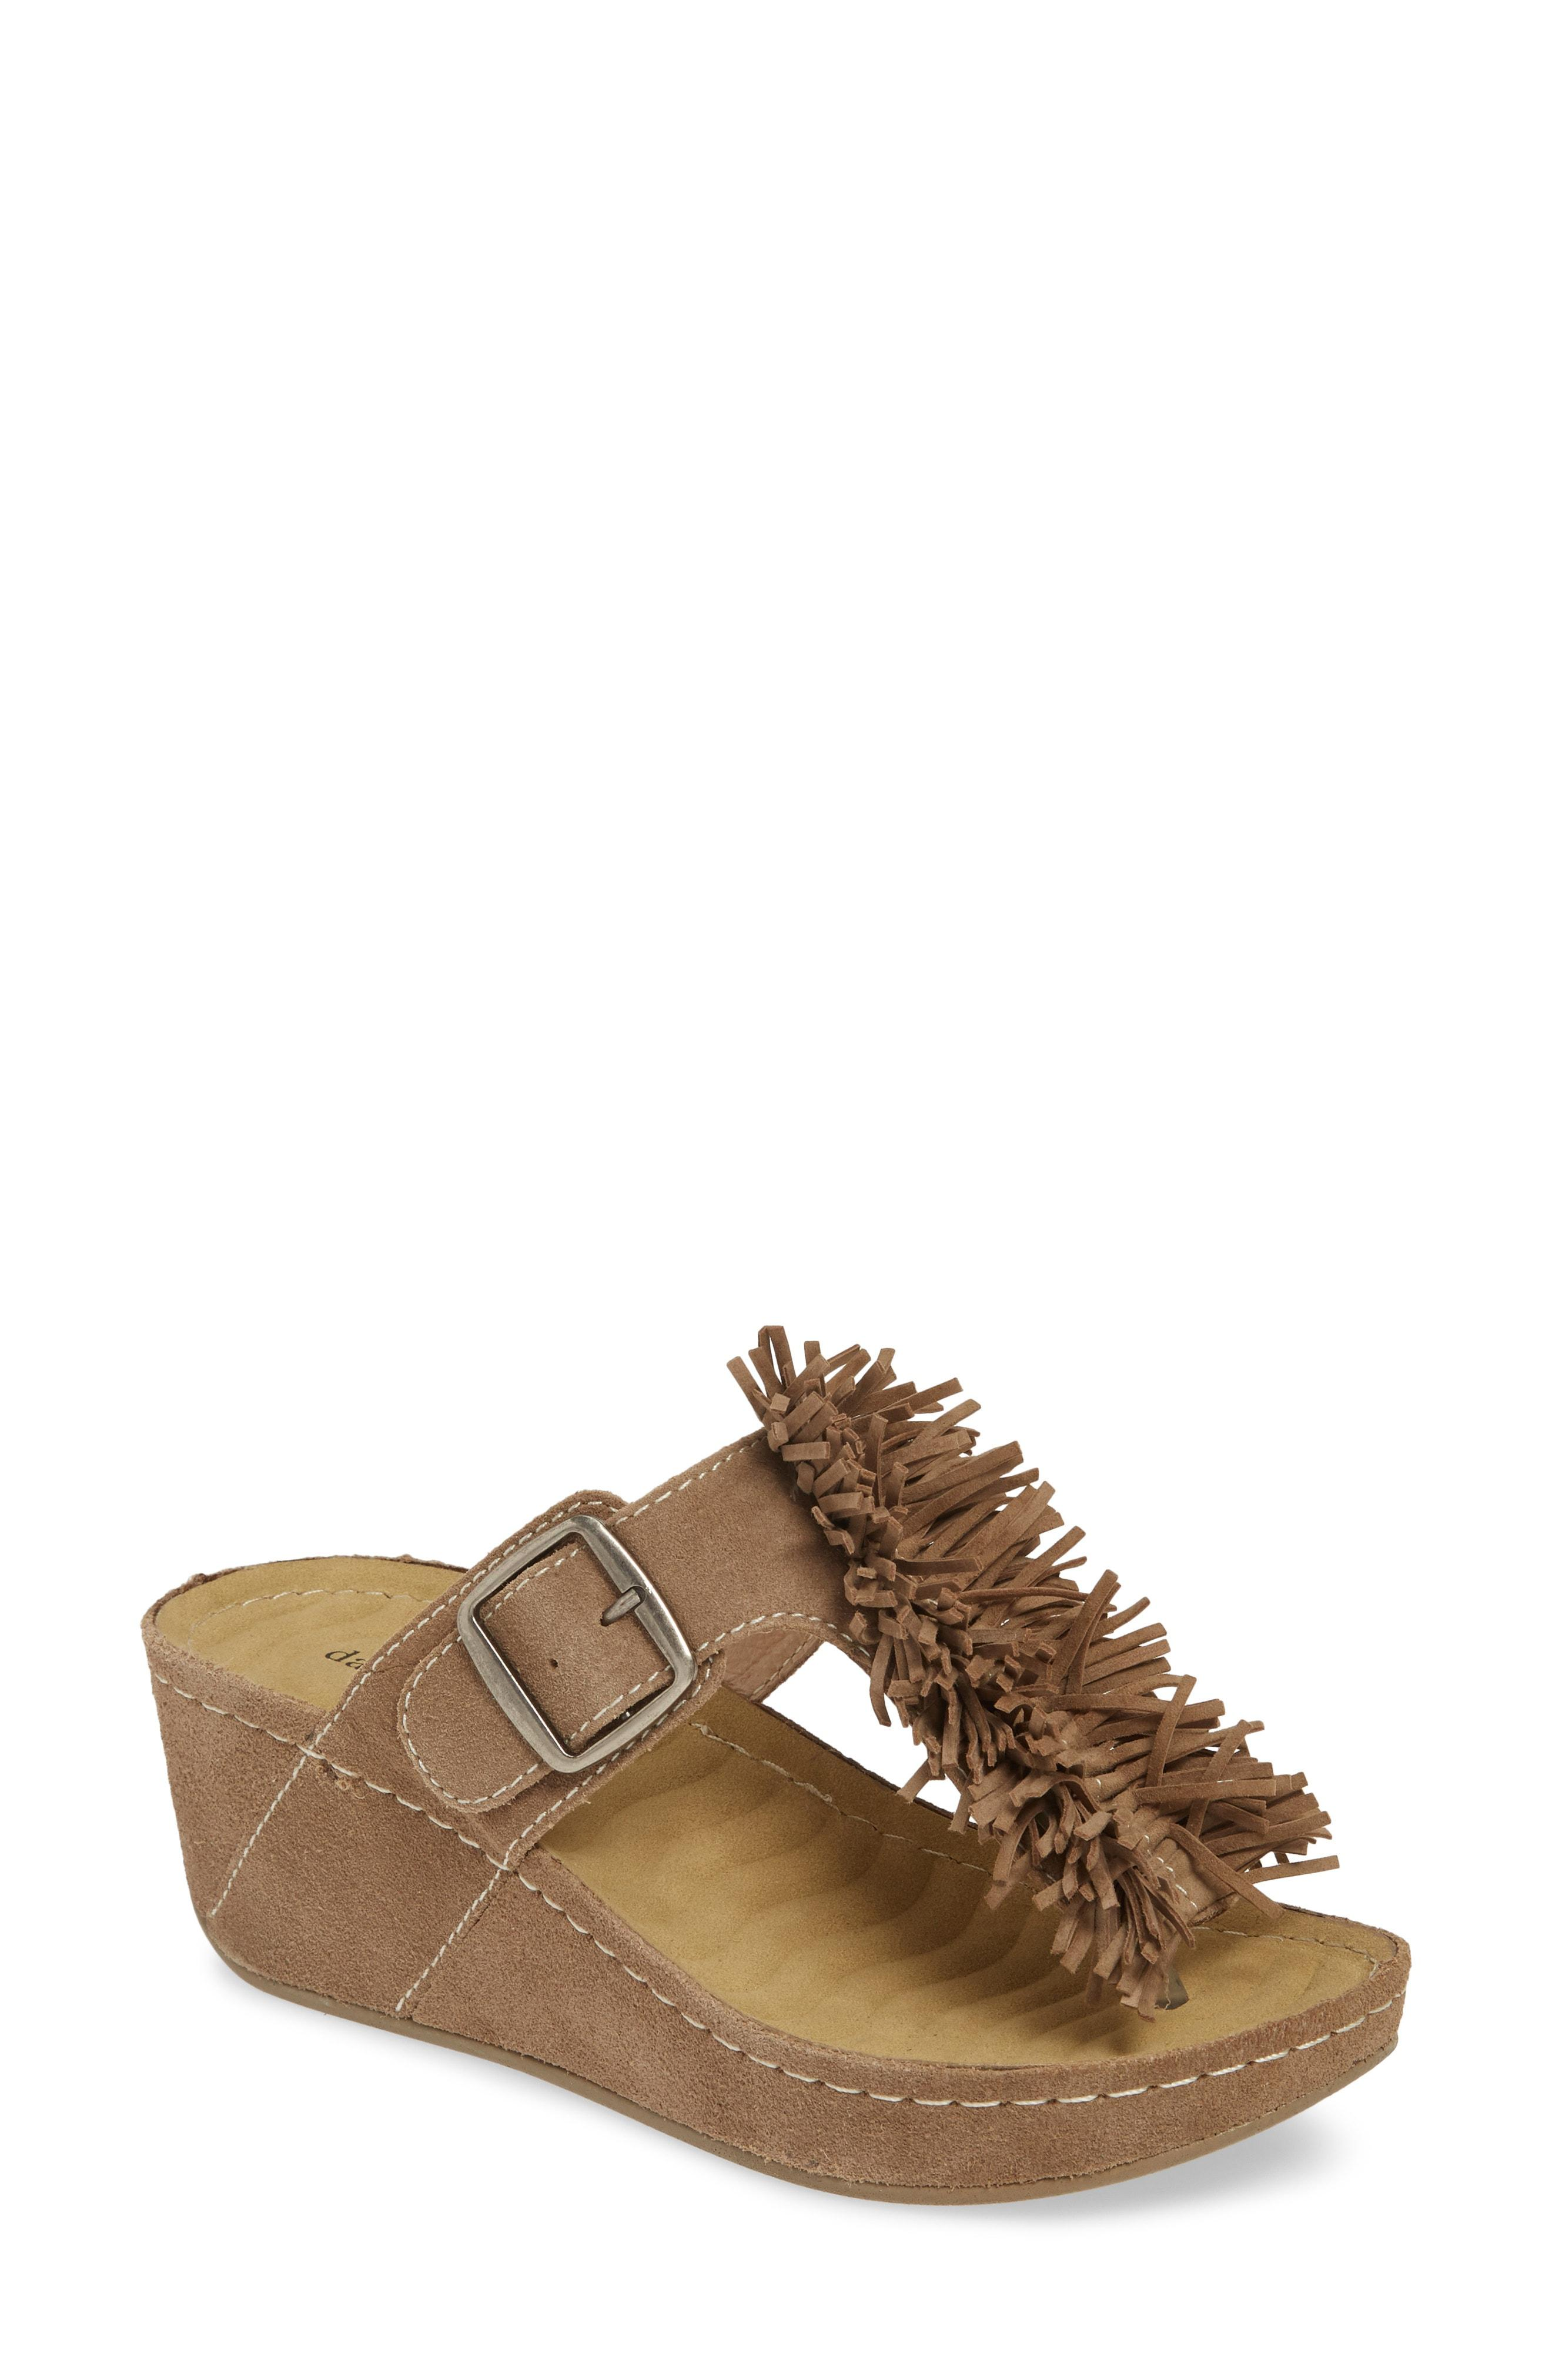 5c9bbae9b03 Lyst - David Tate Festive Wedge Sandal in Natural